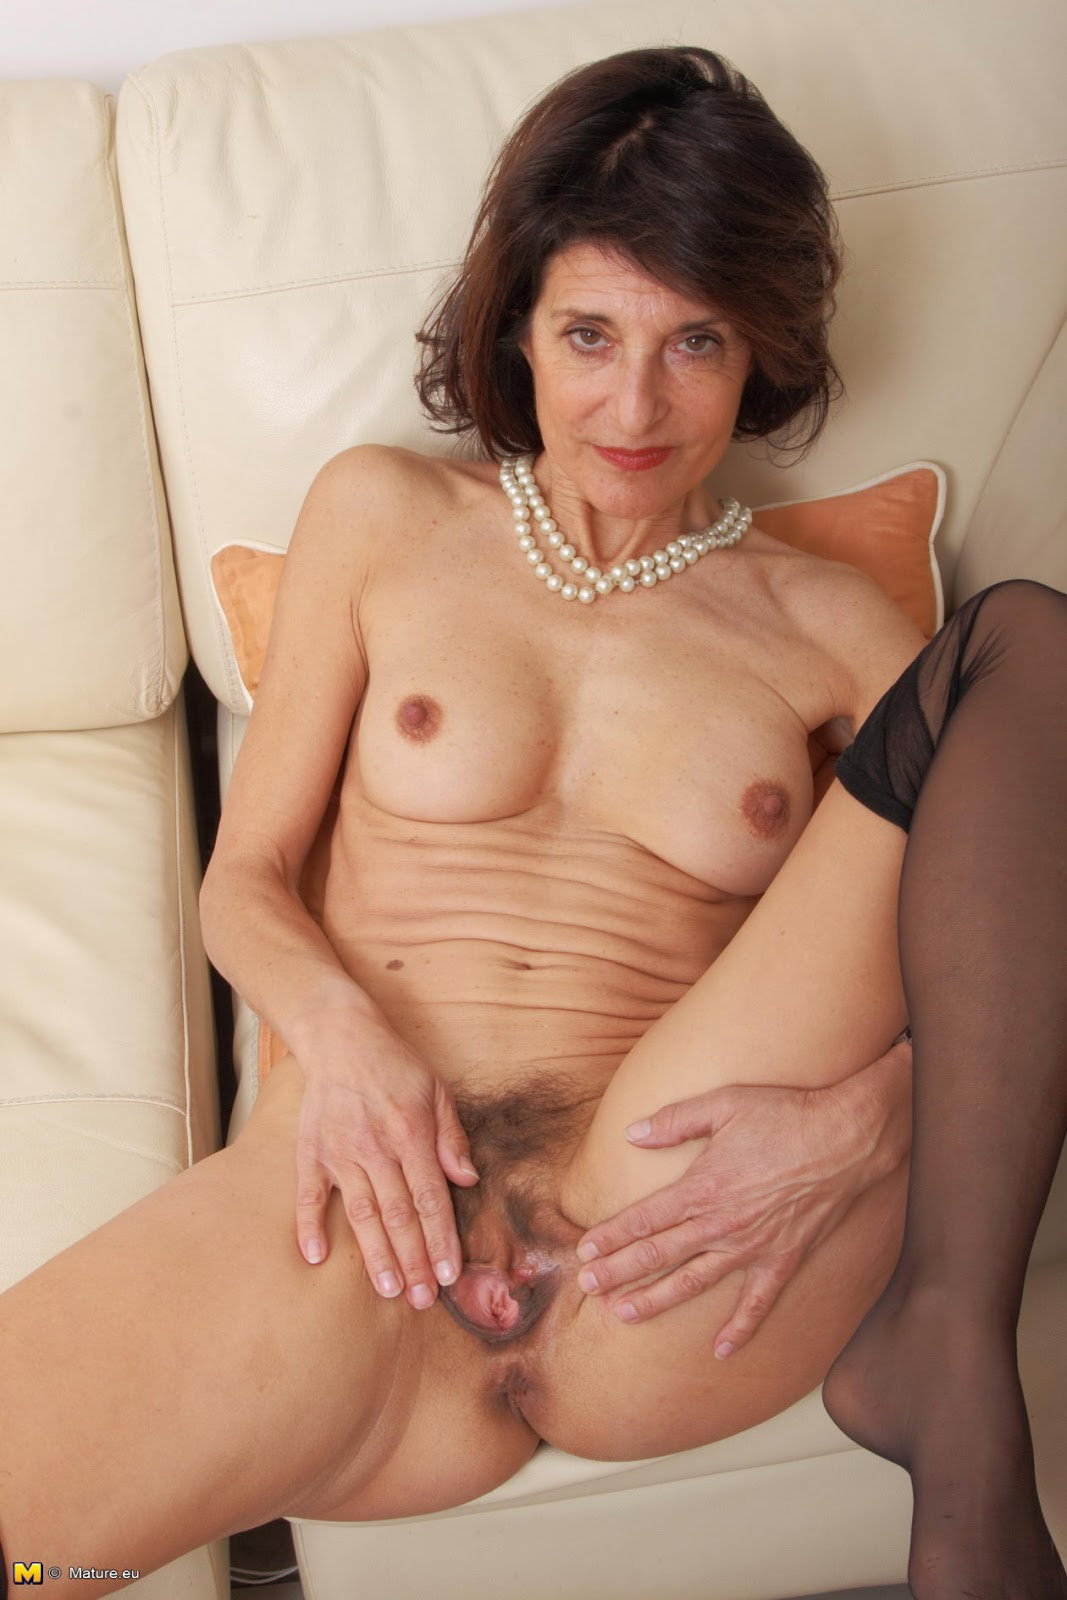 Mature nude women over 50